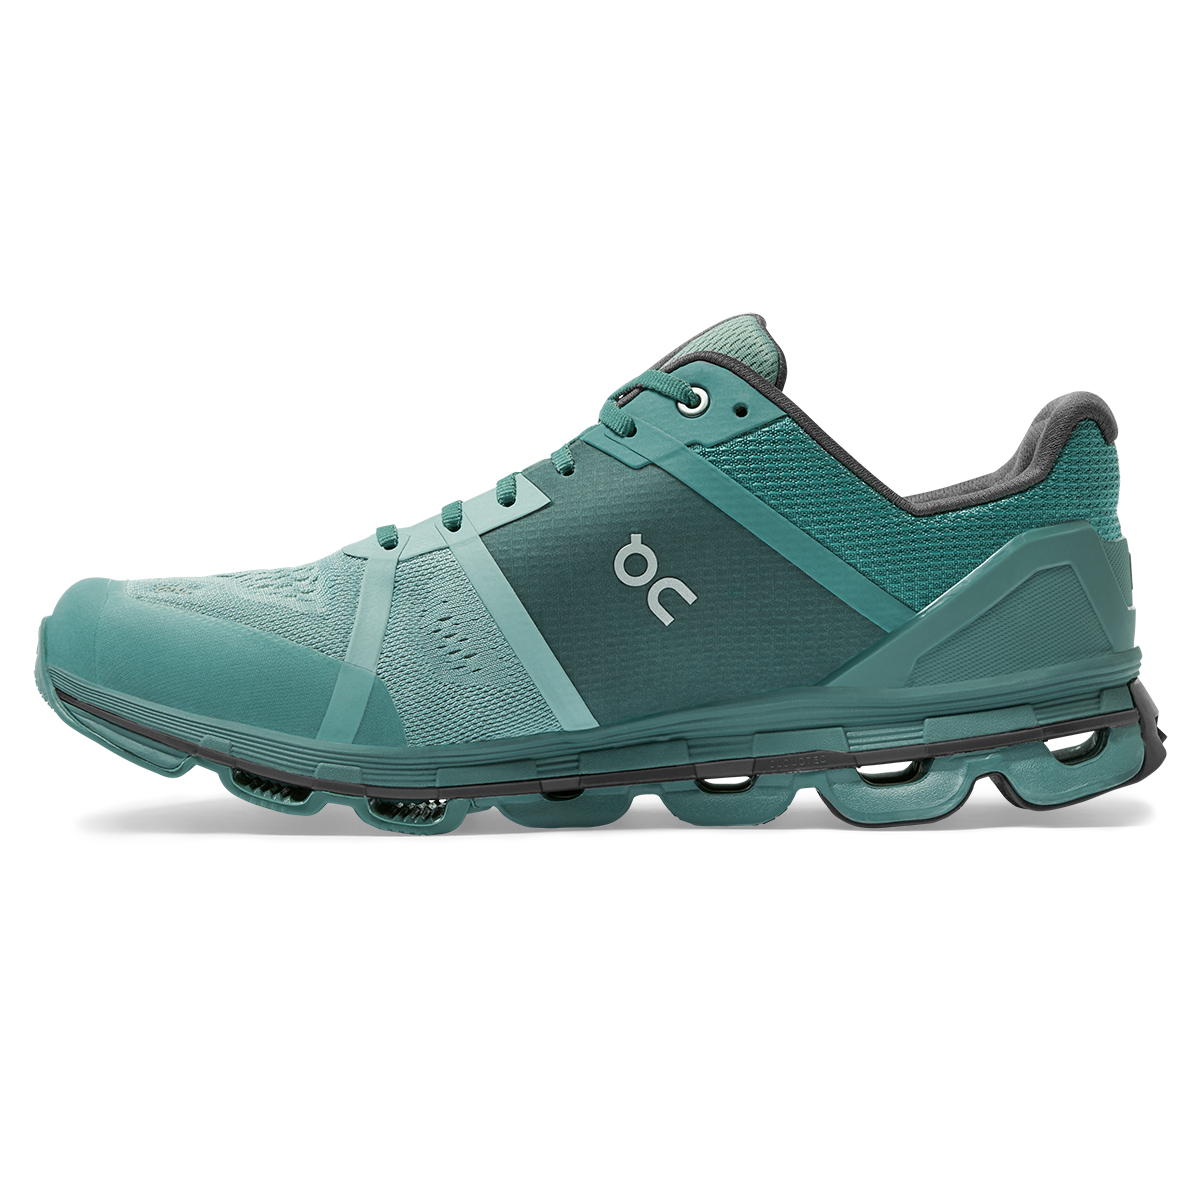 Men's On Cloudace Running Shoe - Color: Sea/Shadow - Size: 7 - Width: Regular, Sea/Shadow, large, image 2